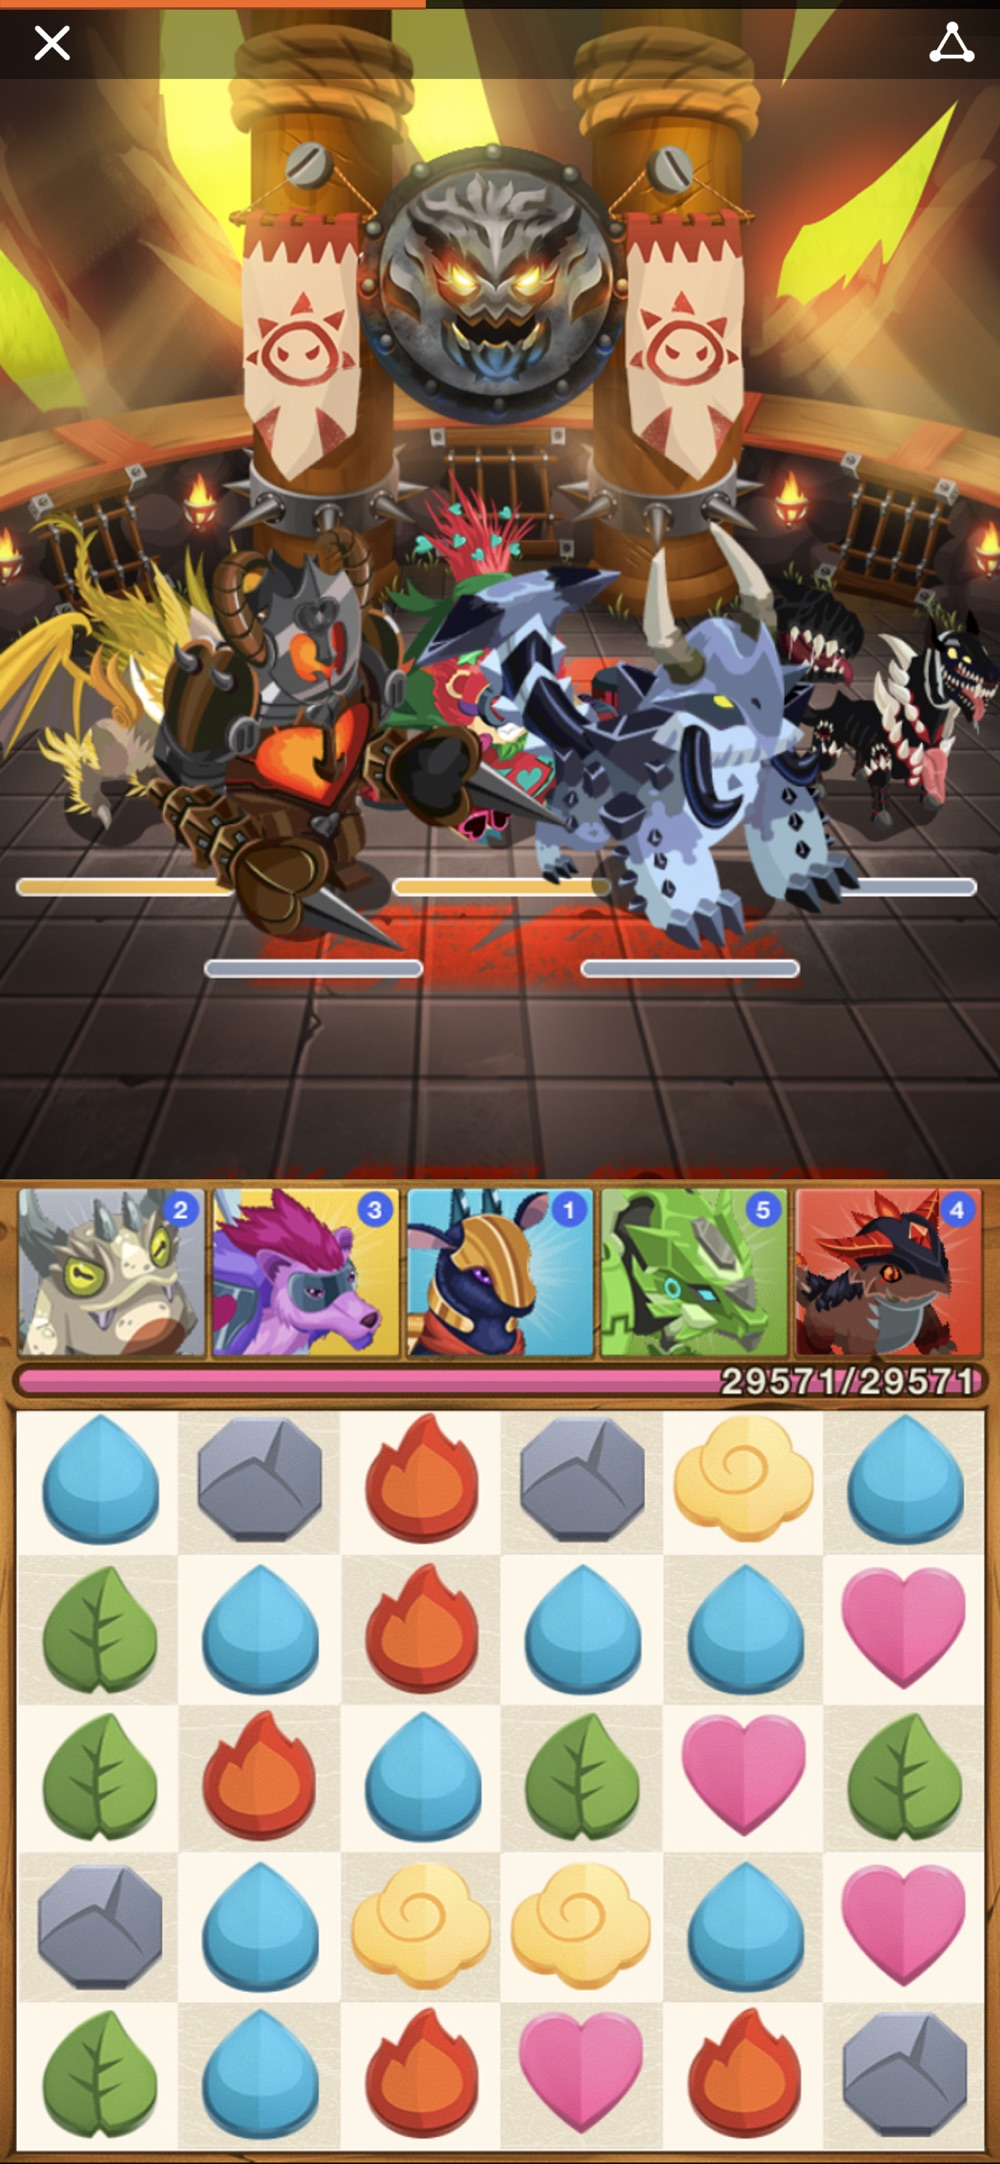 Battle Camp - Catch Monsters hack tool